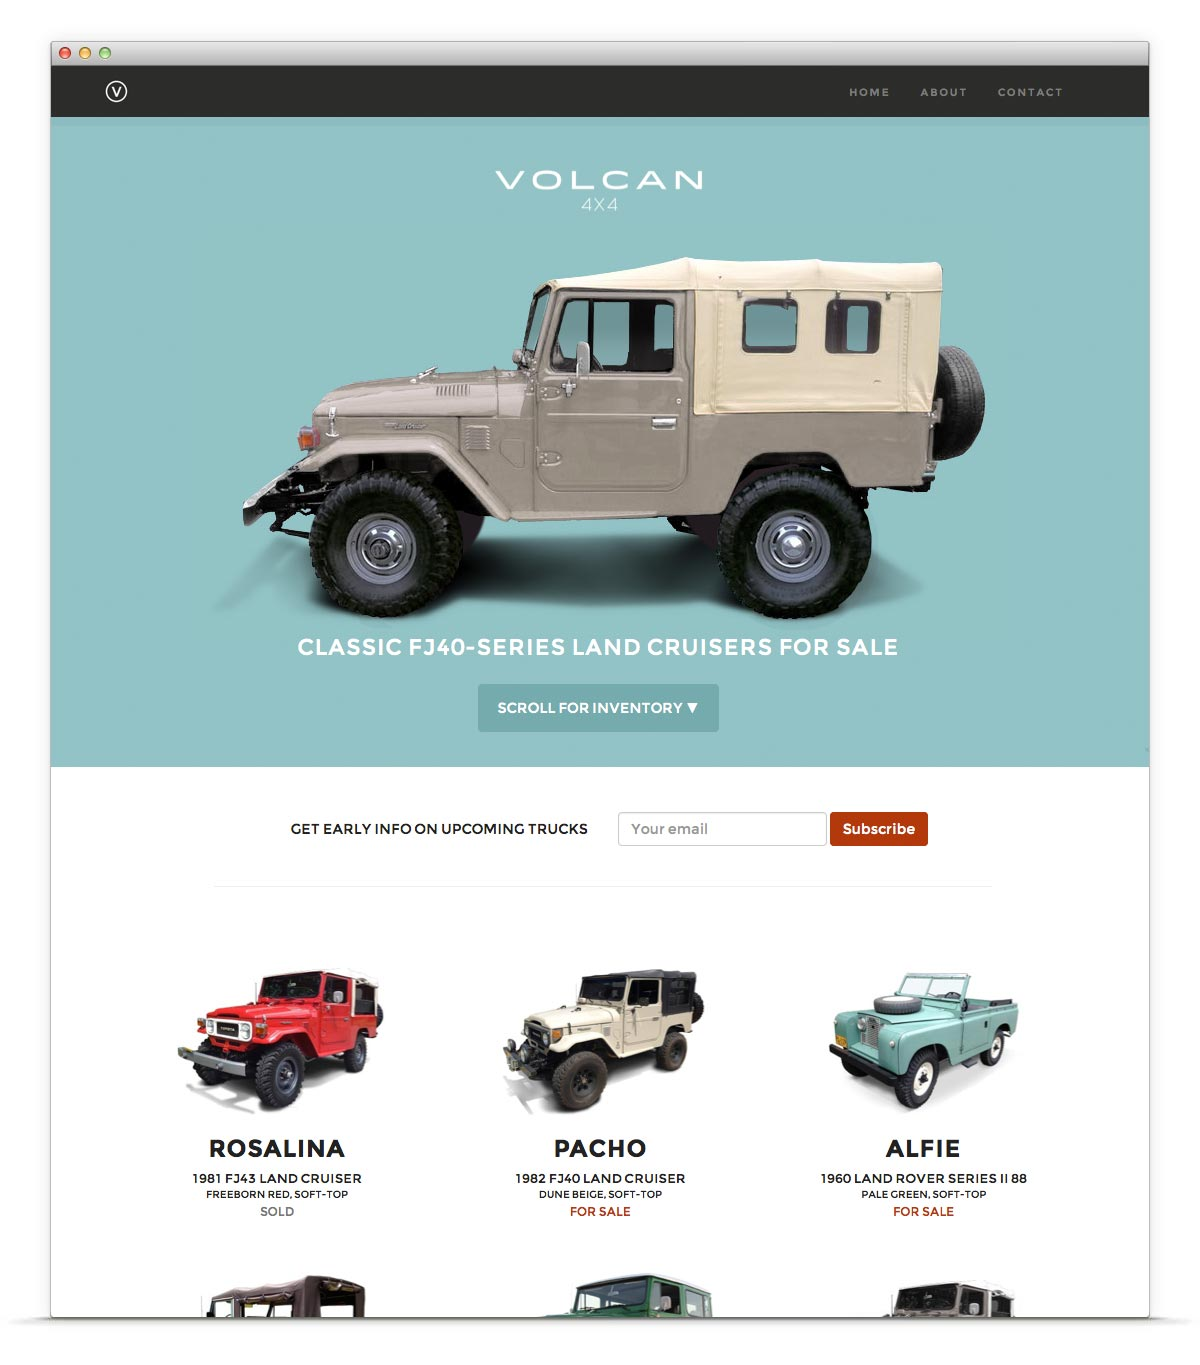 Volcan 4x4 web home